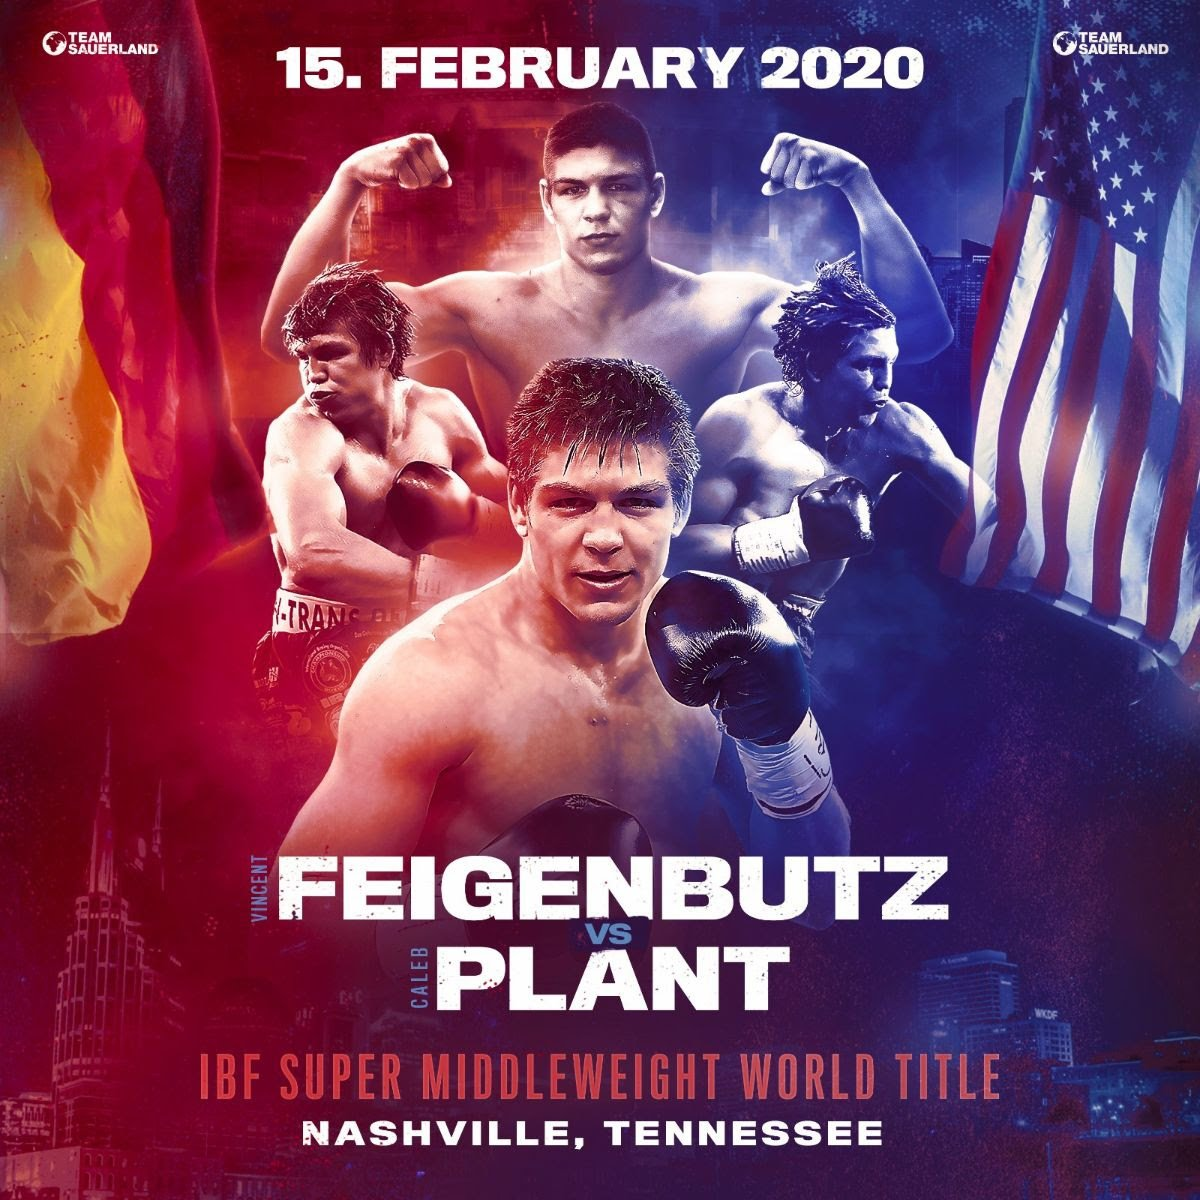 Caleb Plant - Team Sauerland's 24-year-old super middleweight Vincent 'KO King' Feigenbutz (31-2, 28 KOs) will face the USA's undefeated Caleb Plant (19-0, 11 KOs) for the IBF World Super Middleweight title on February 15th at the Bridgestone Arena in Nashville, Tennessee.